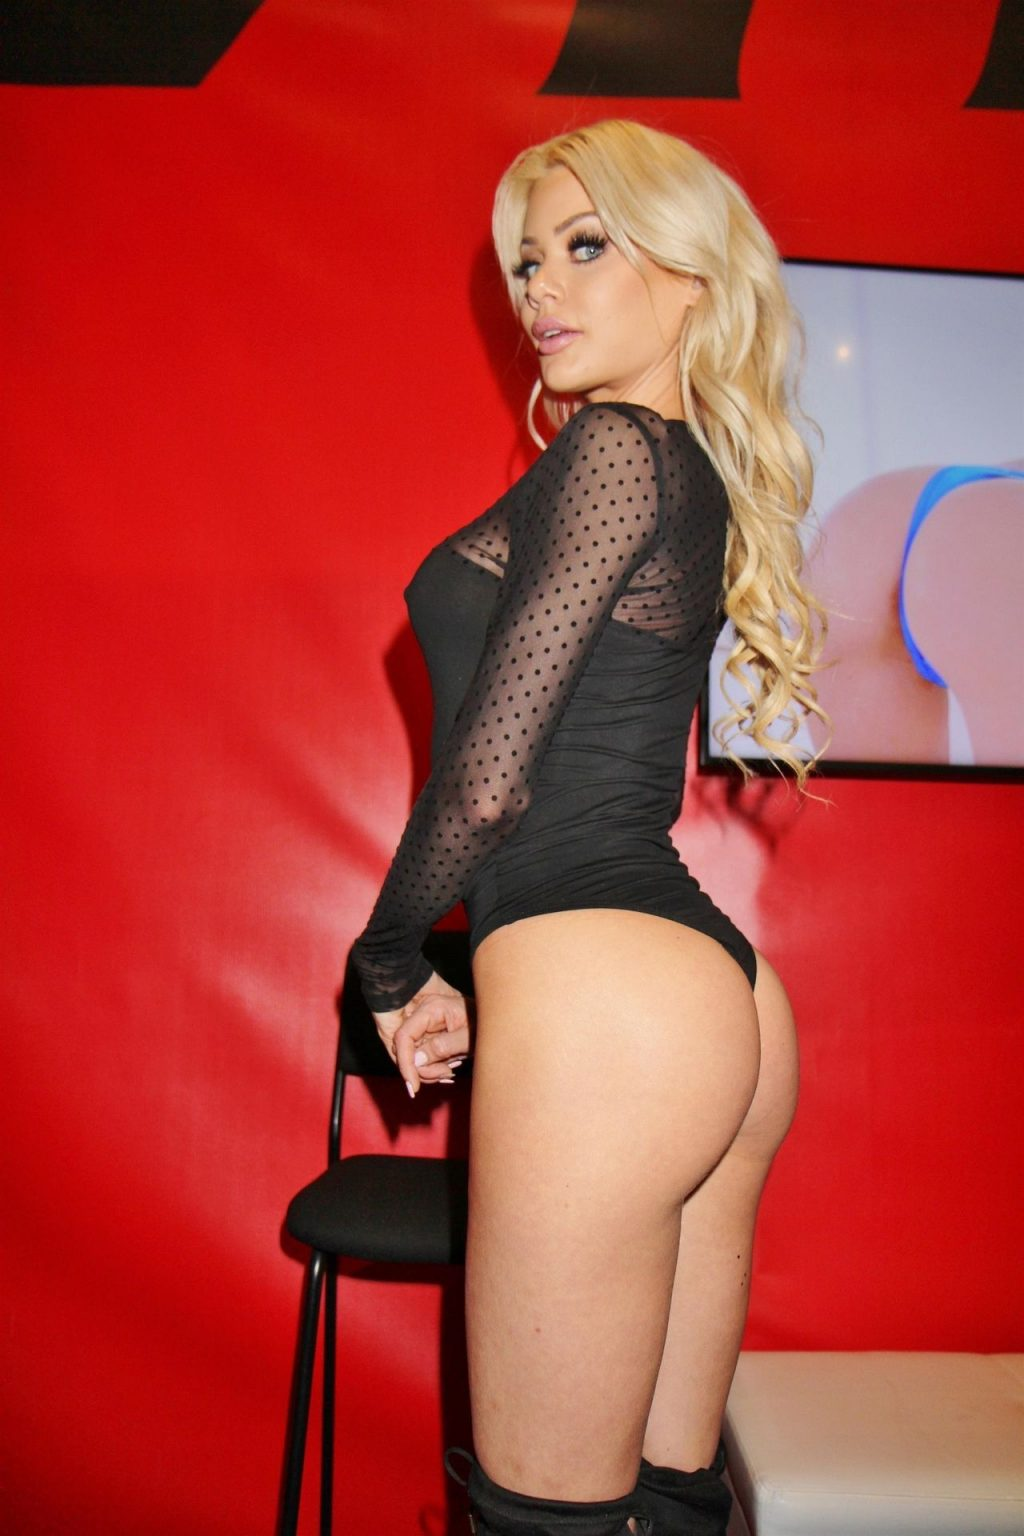 Riley Steele Poses in a See-Through Bodysuit at the 2020 Adult Entertainment Expo (2 Photos)